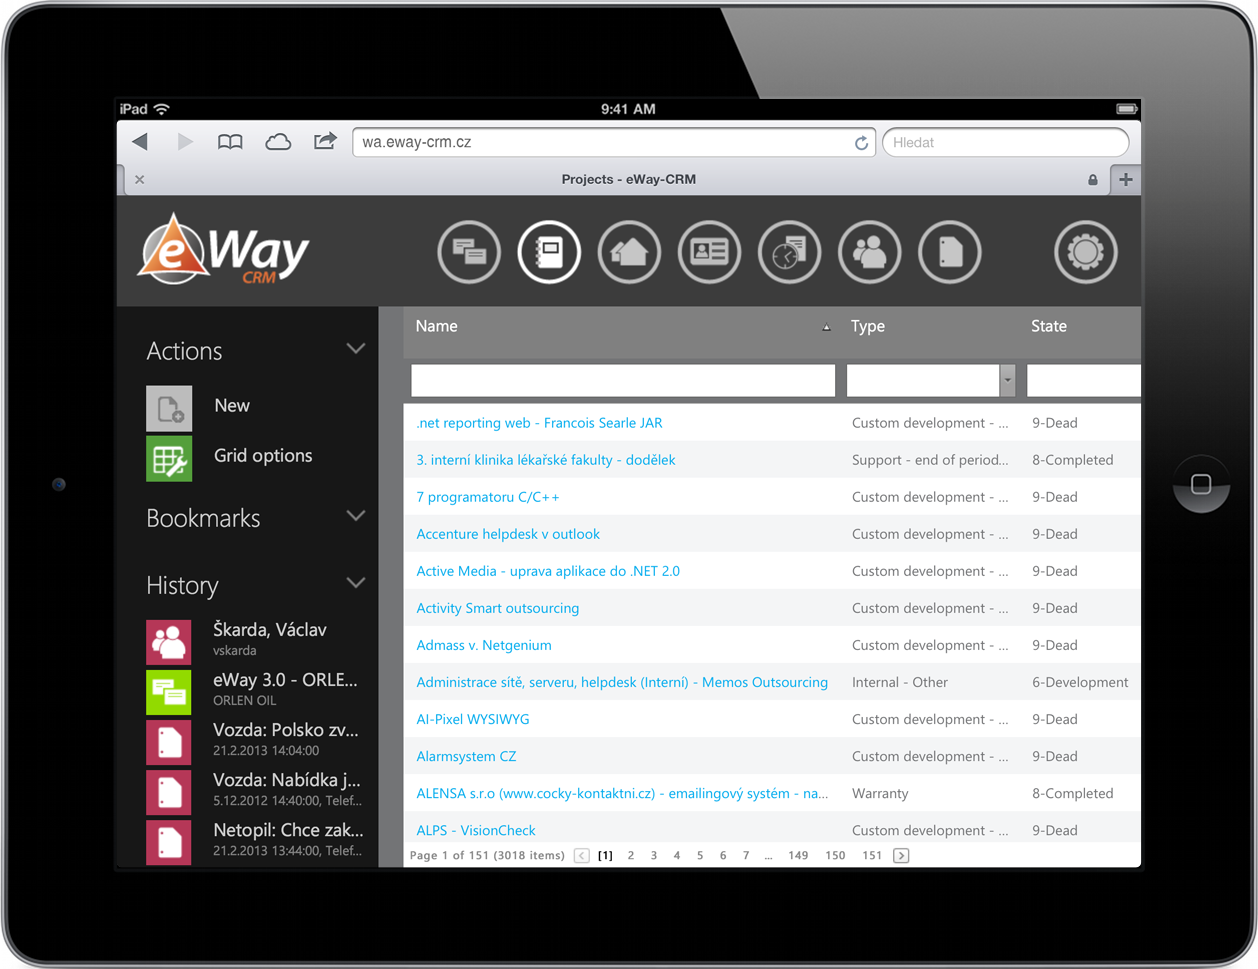 Projects in eWay-CRM Web Access